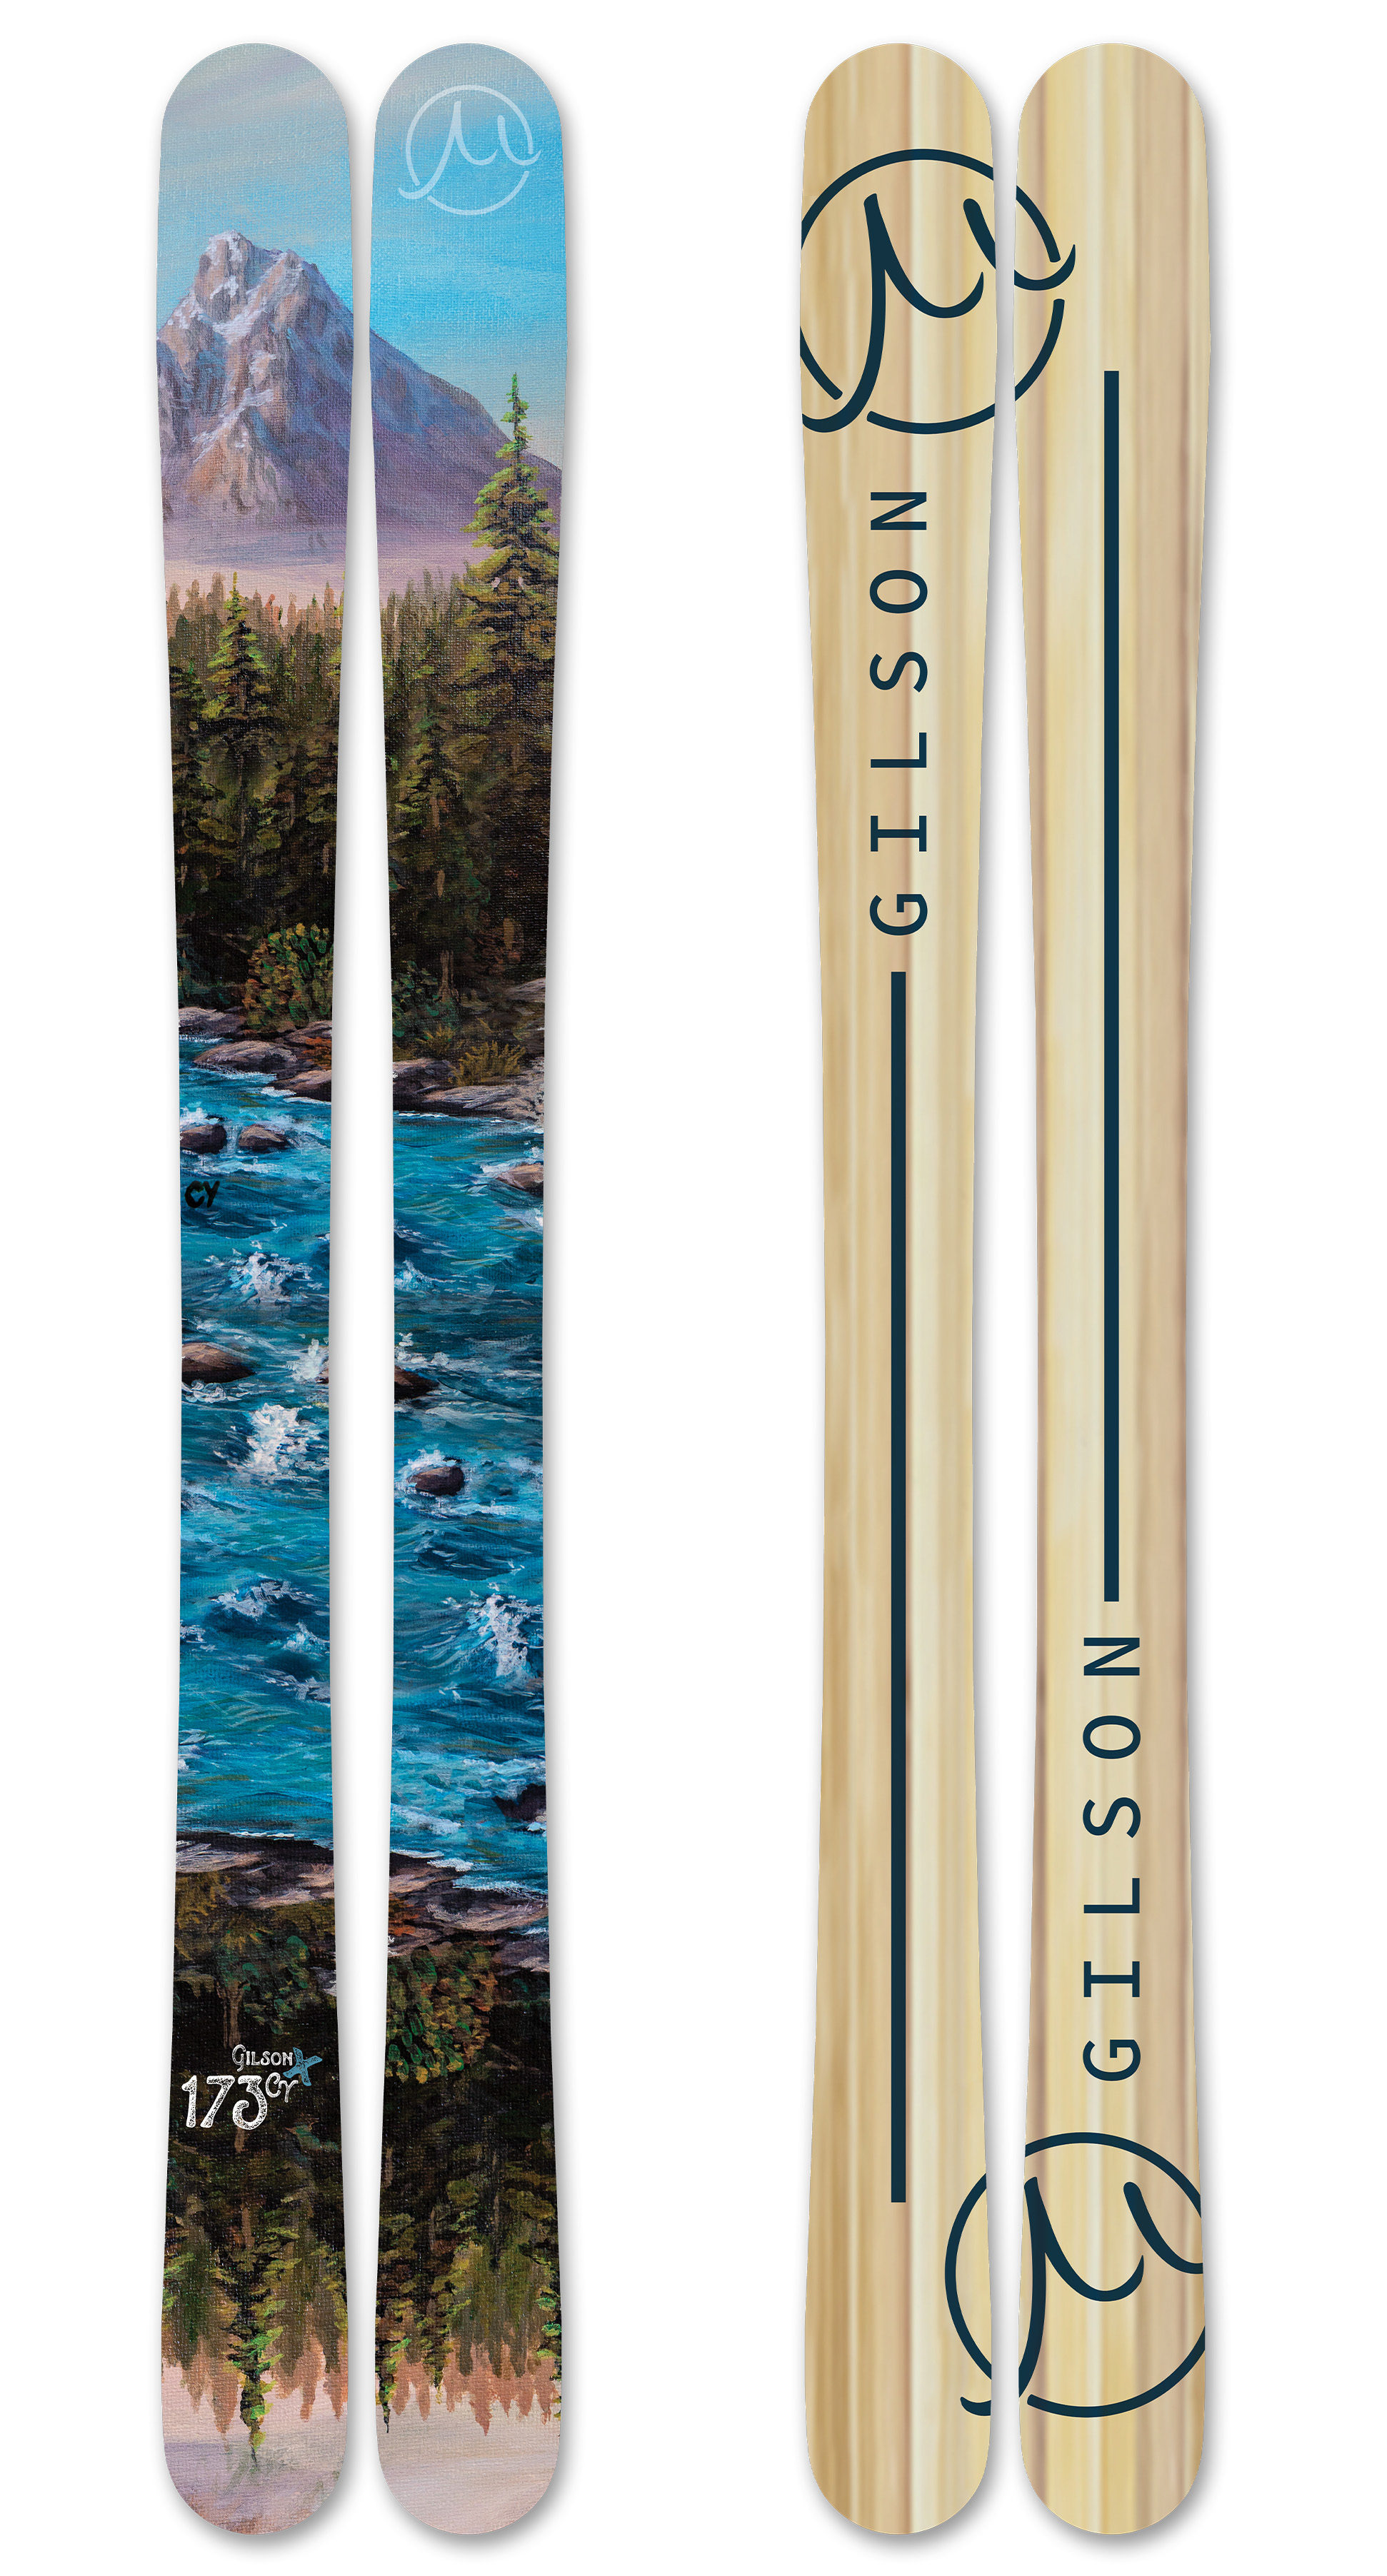 Wildlands skis large